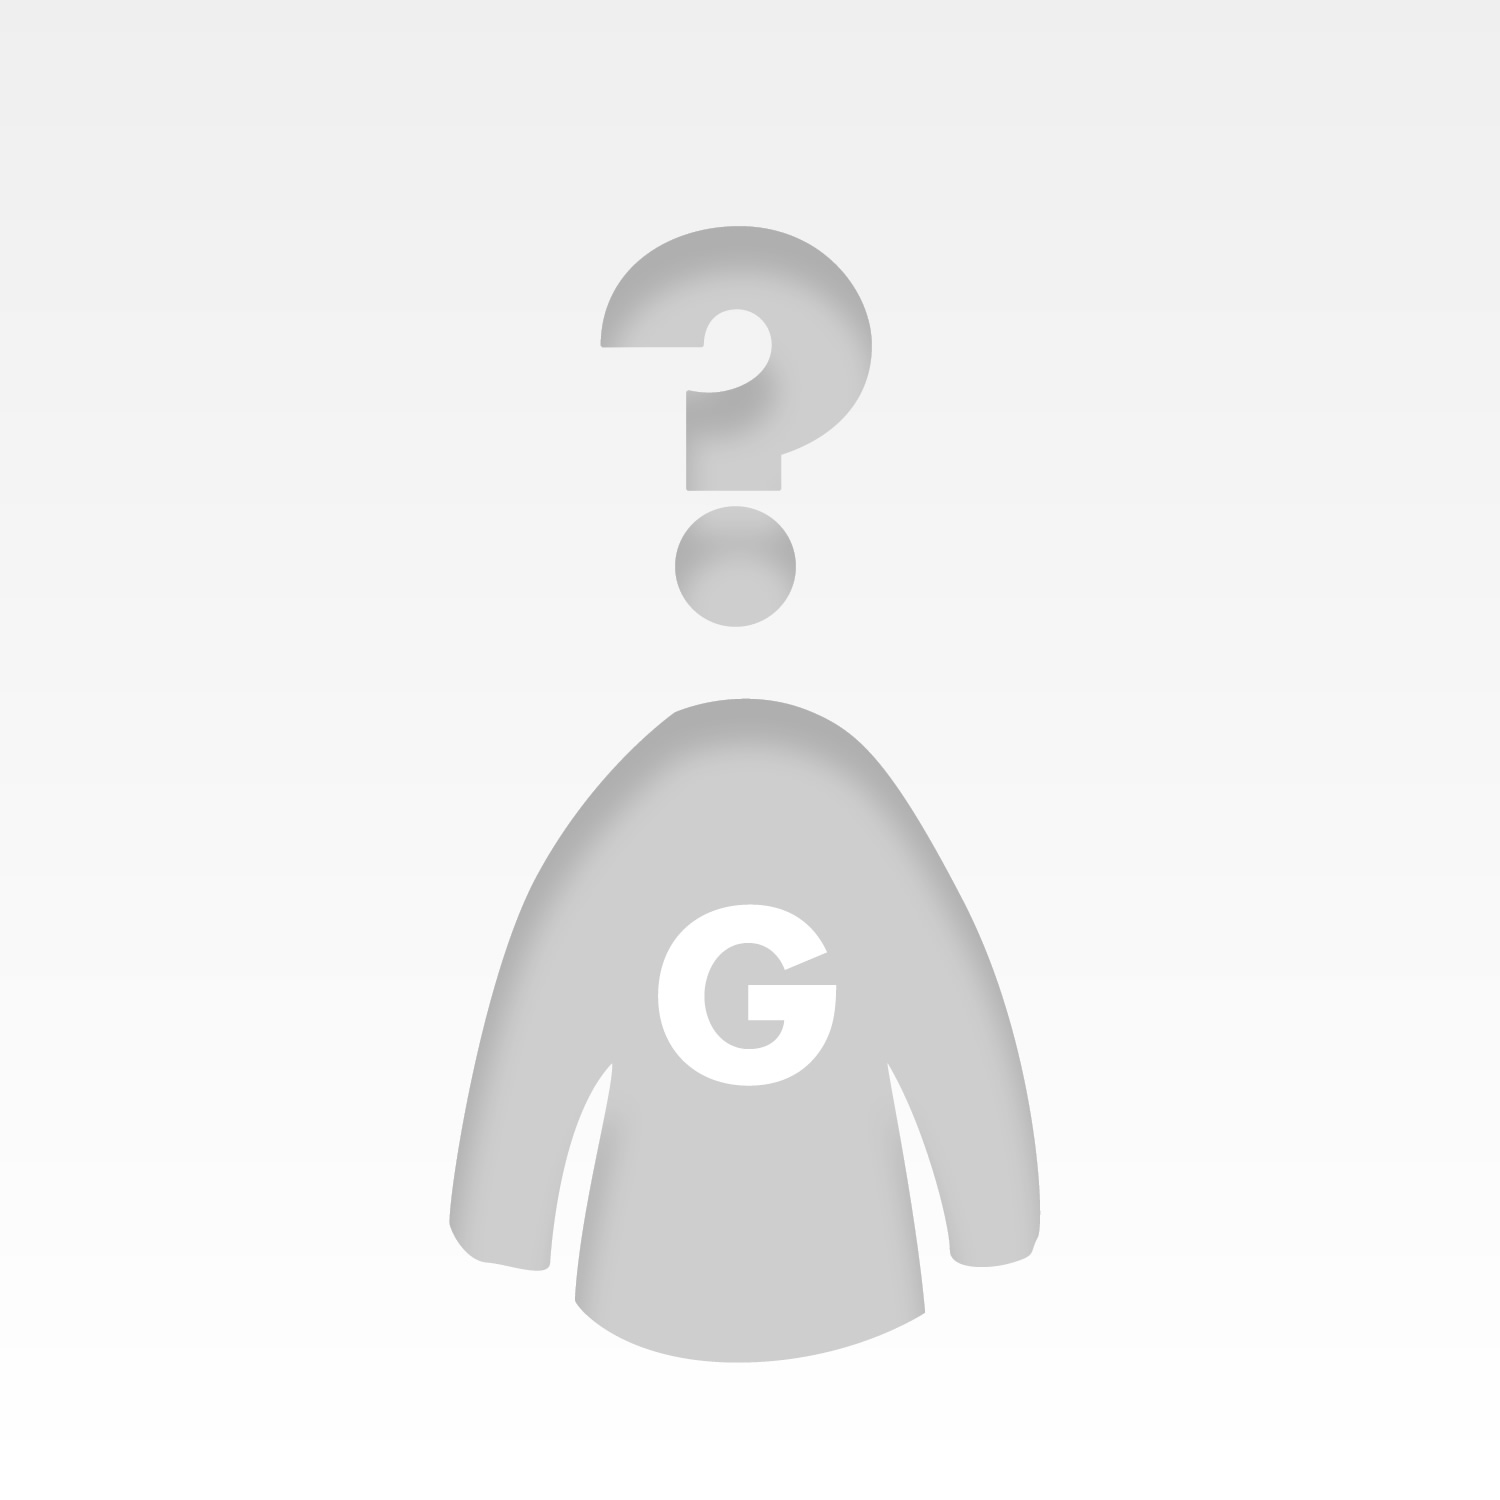 The s2qkgd5's avatar